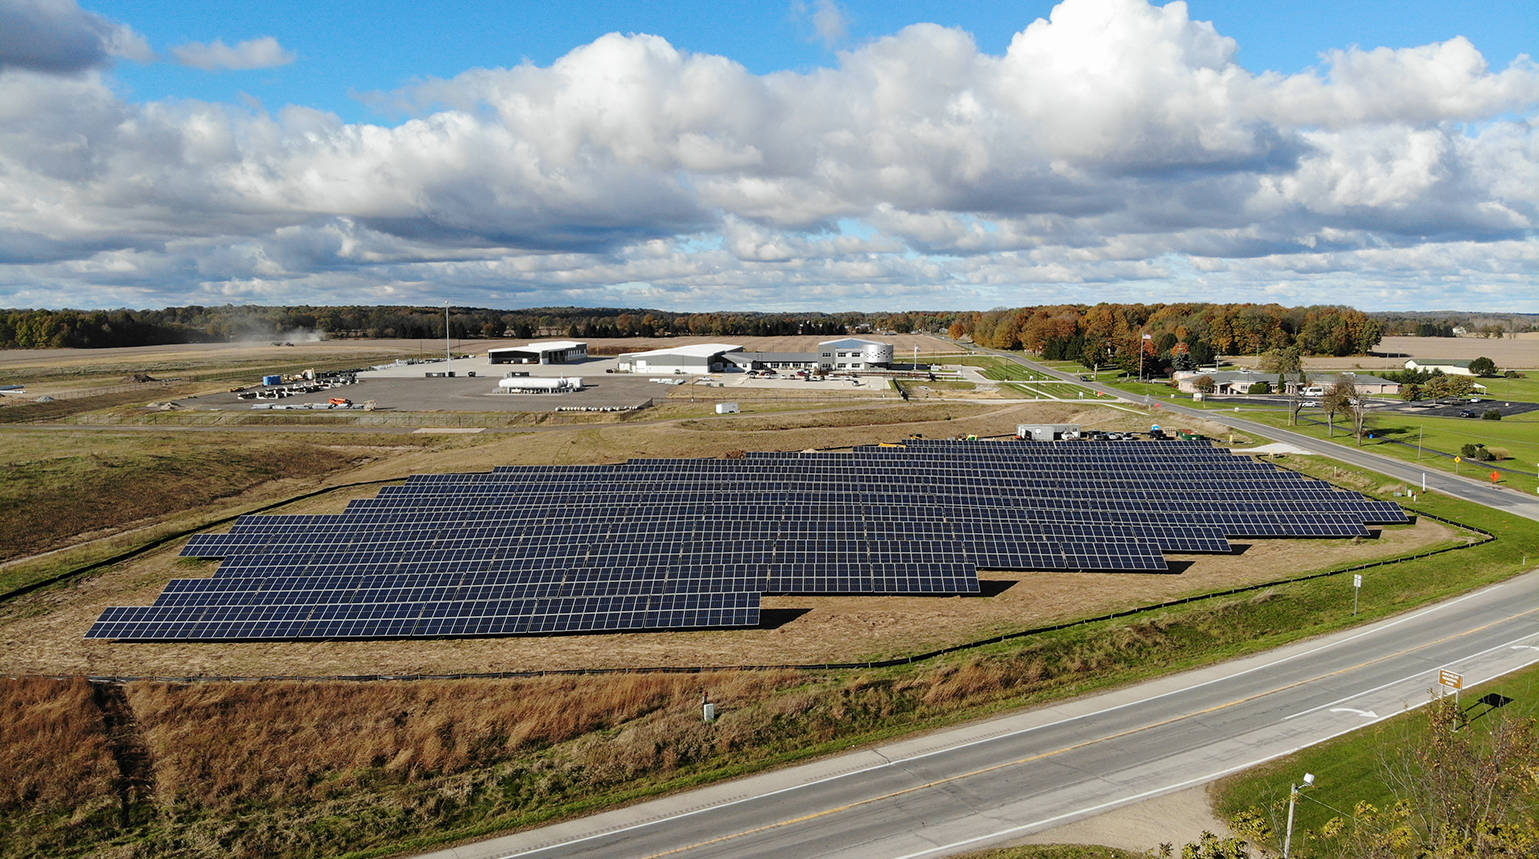 Cassopolis solar array